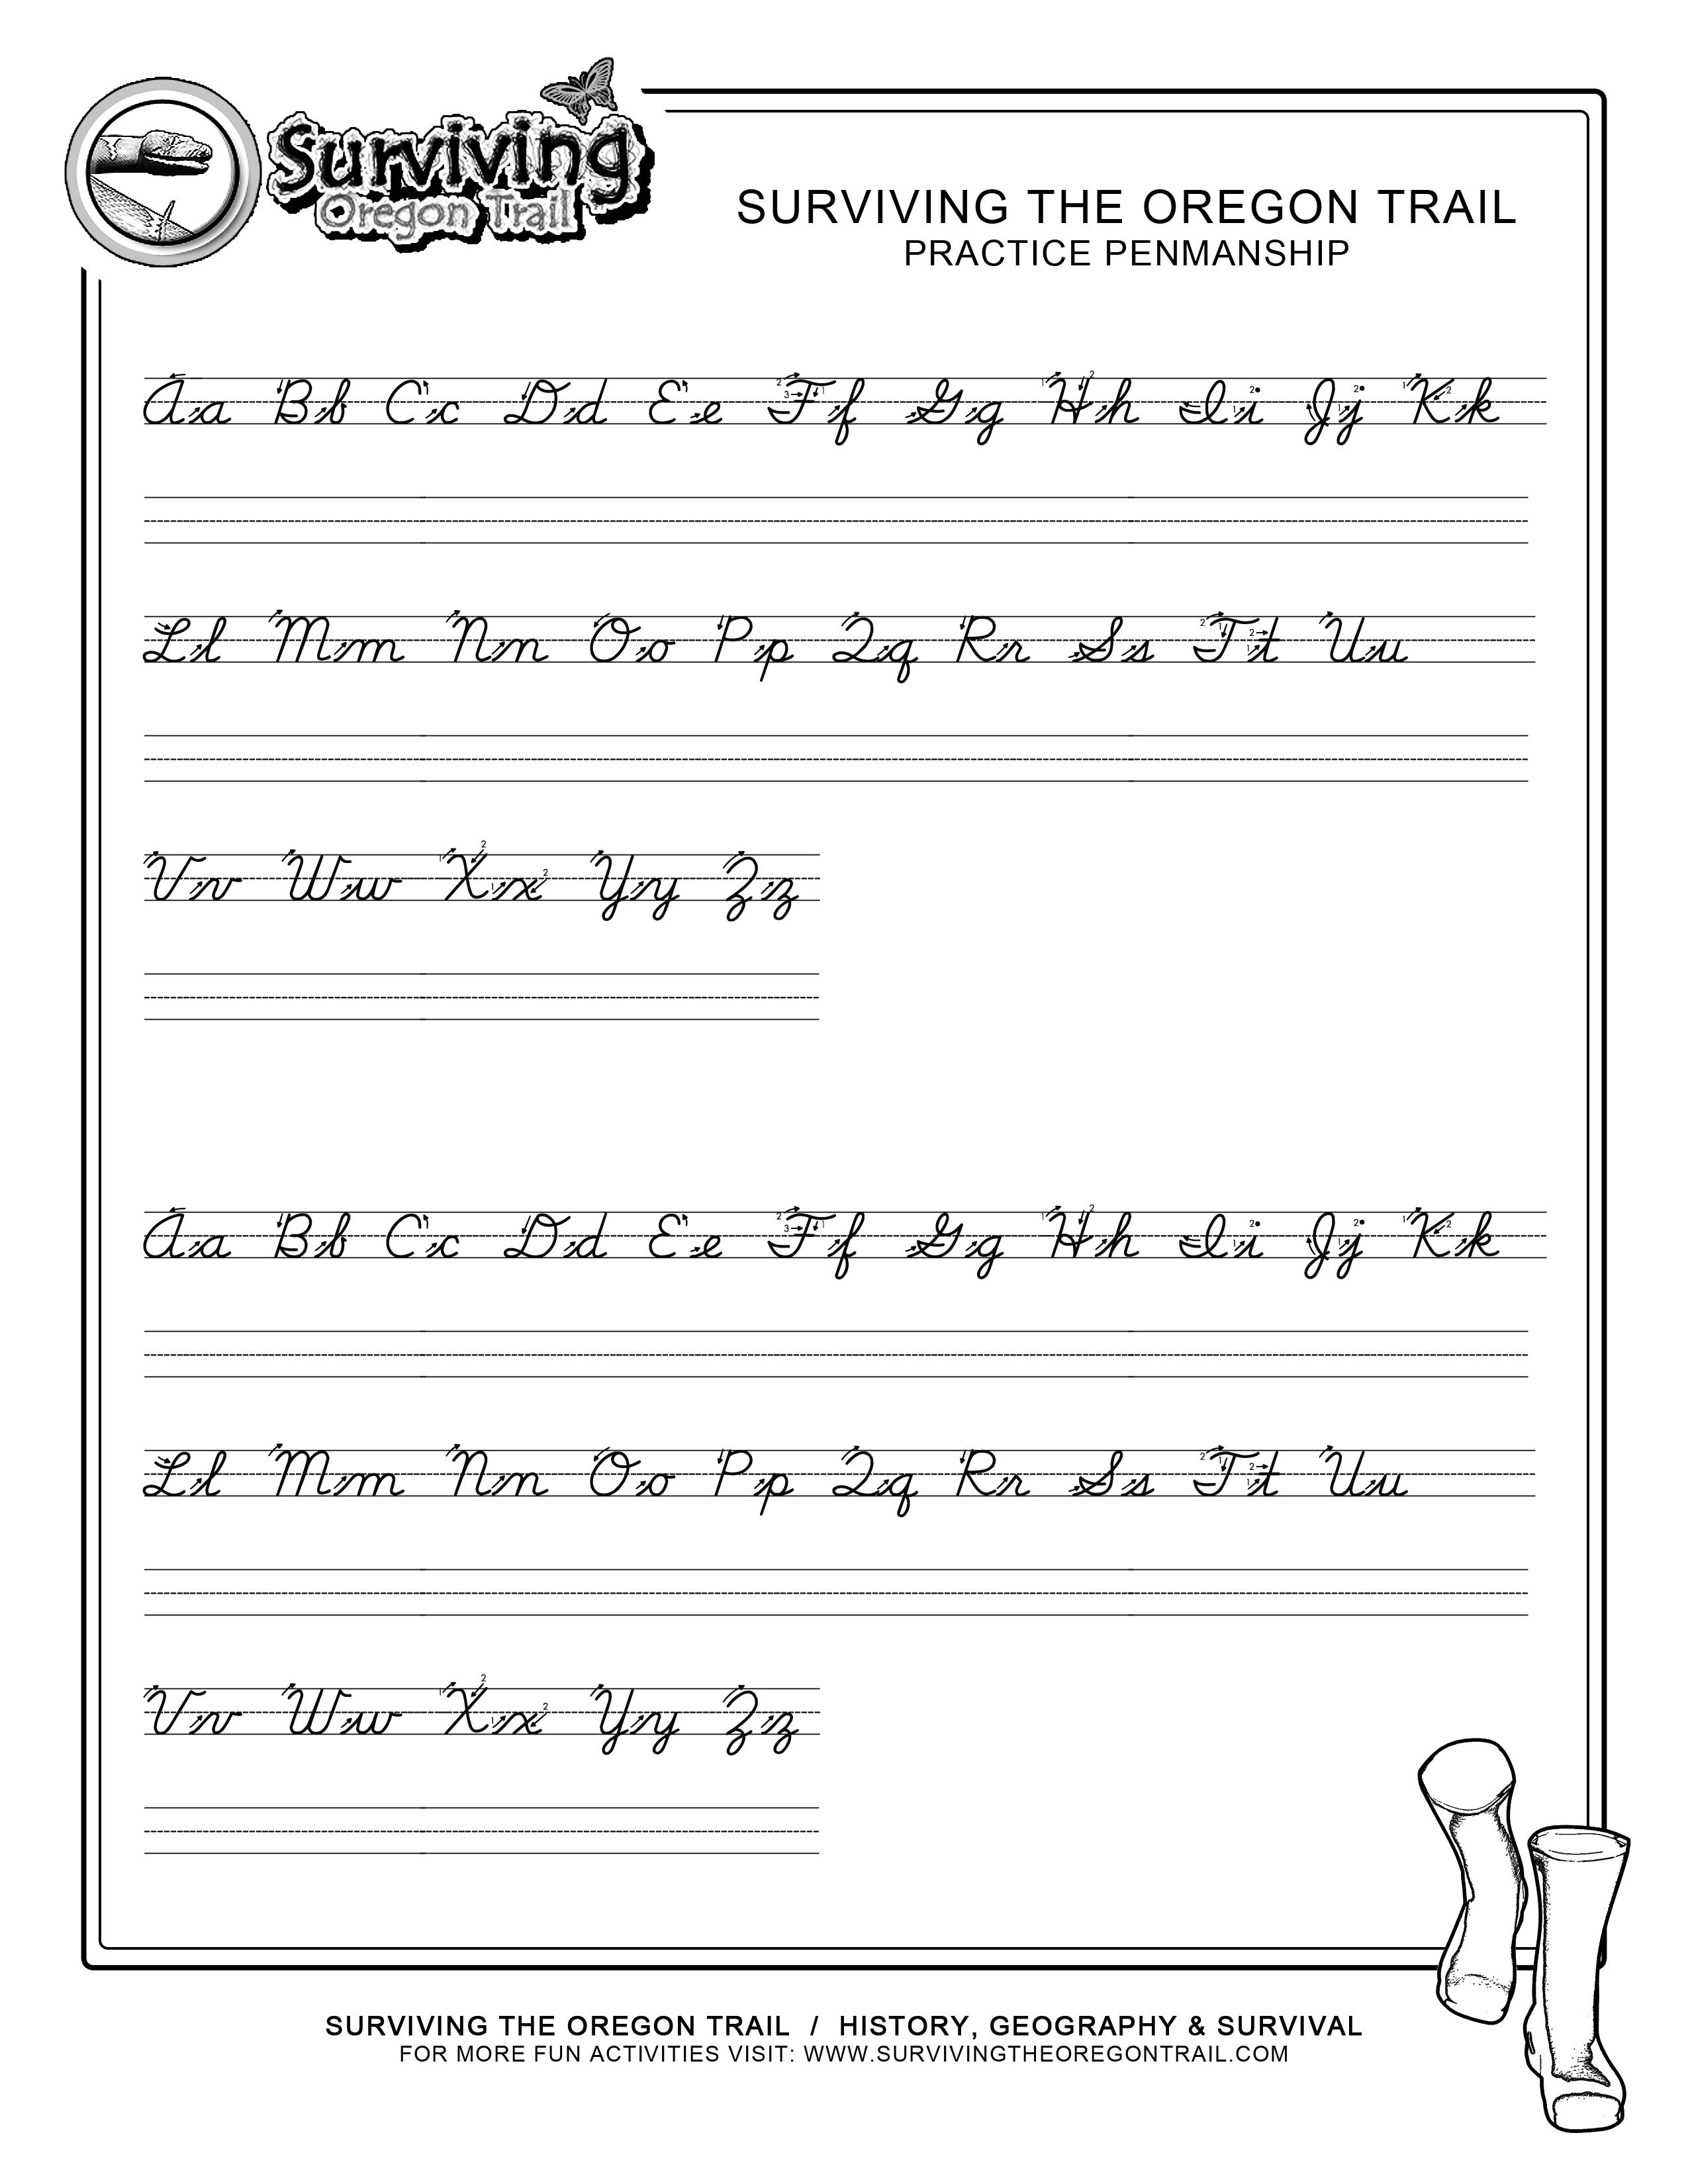 Practice Penmanship – Free Abc's Printable Cursive Writing Worksheet - Free Printable Cursive Handwriting Worksheets